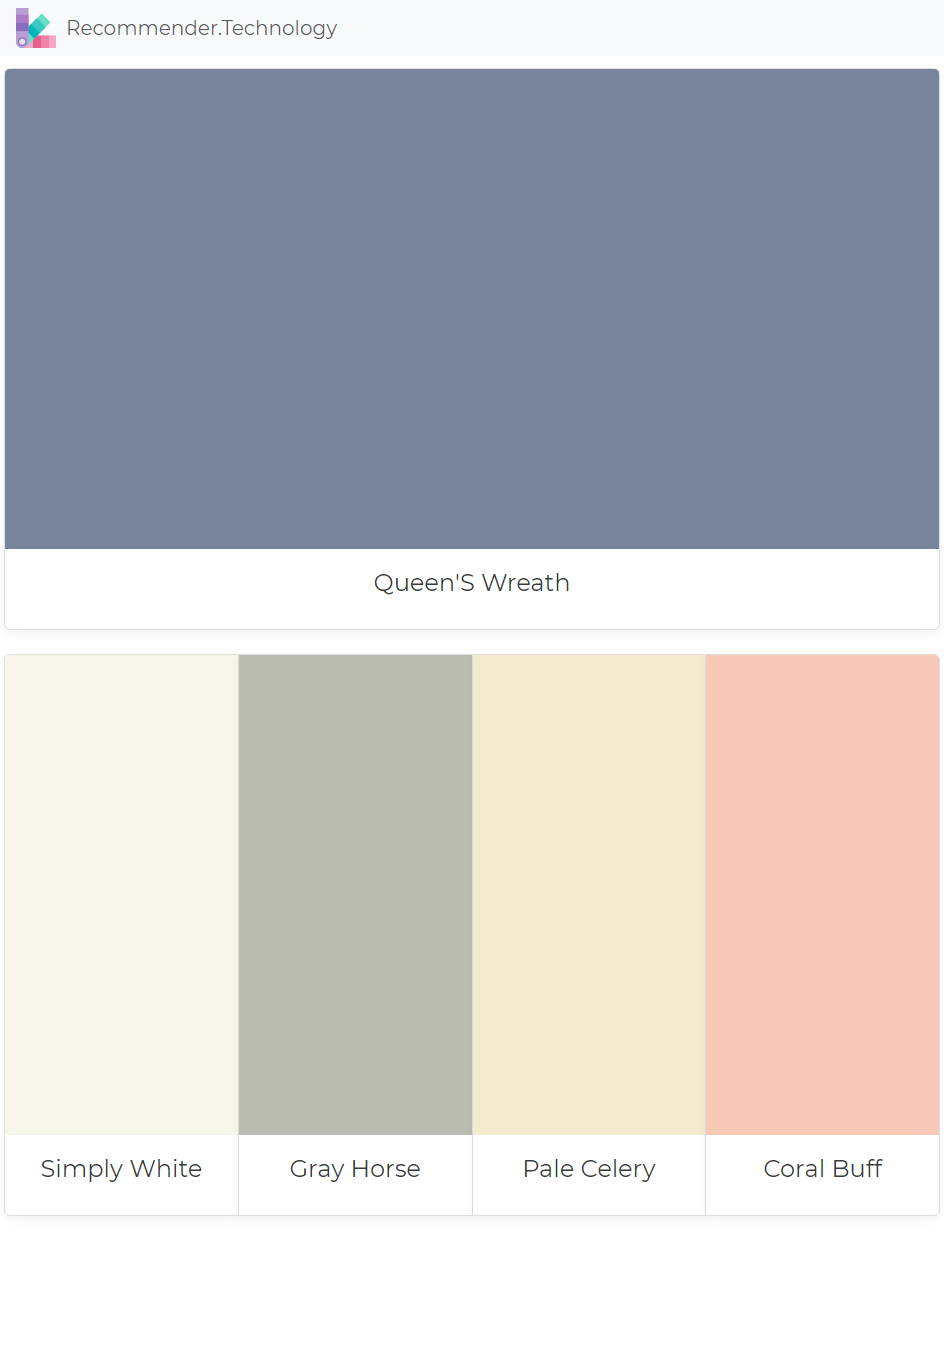 Queen S Wreath Simply White Gray Horse Pale Celery Coral Buff In 2020 Coral Paint Colors House Paint Exterior Exterior Paint